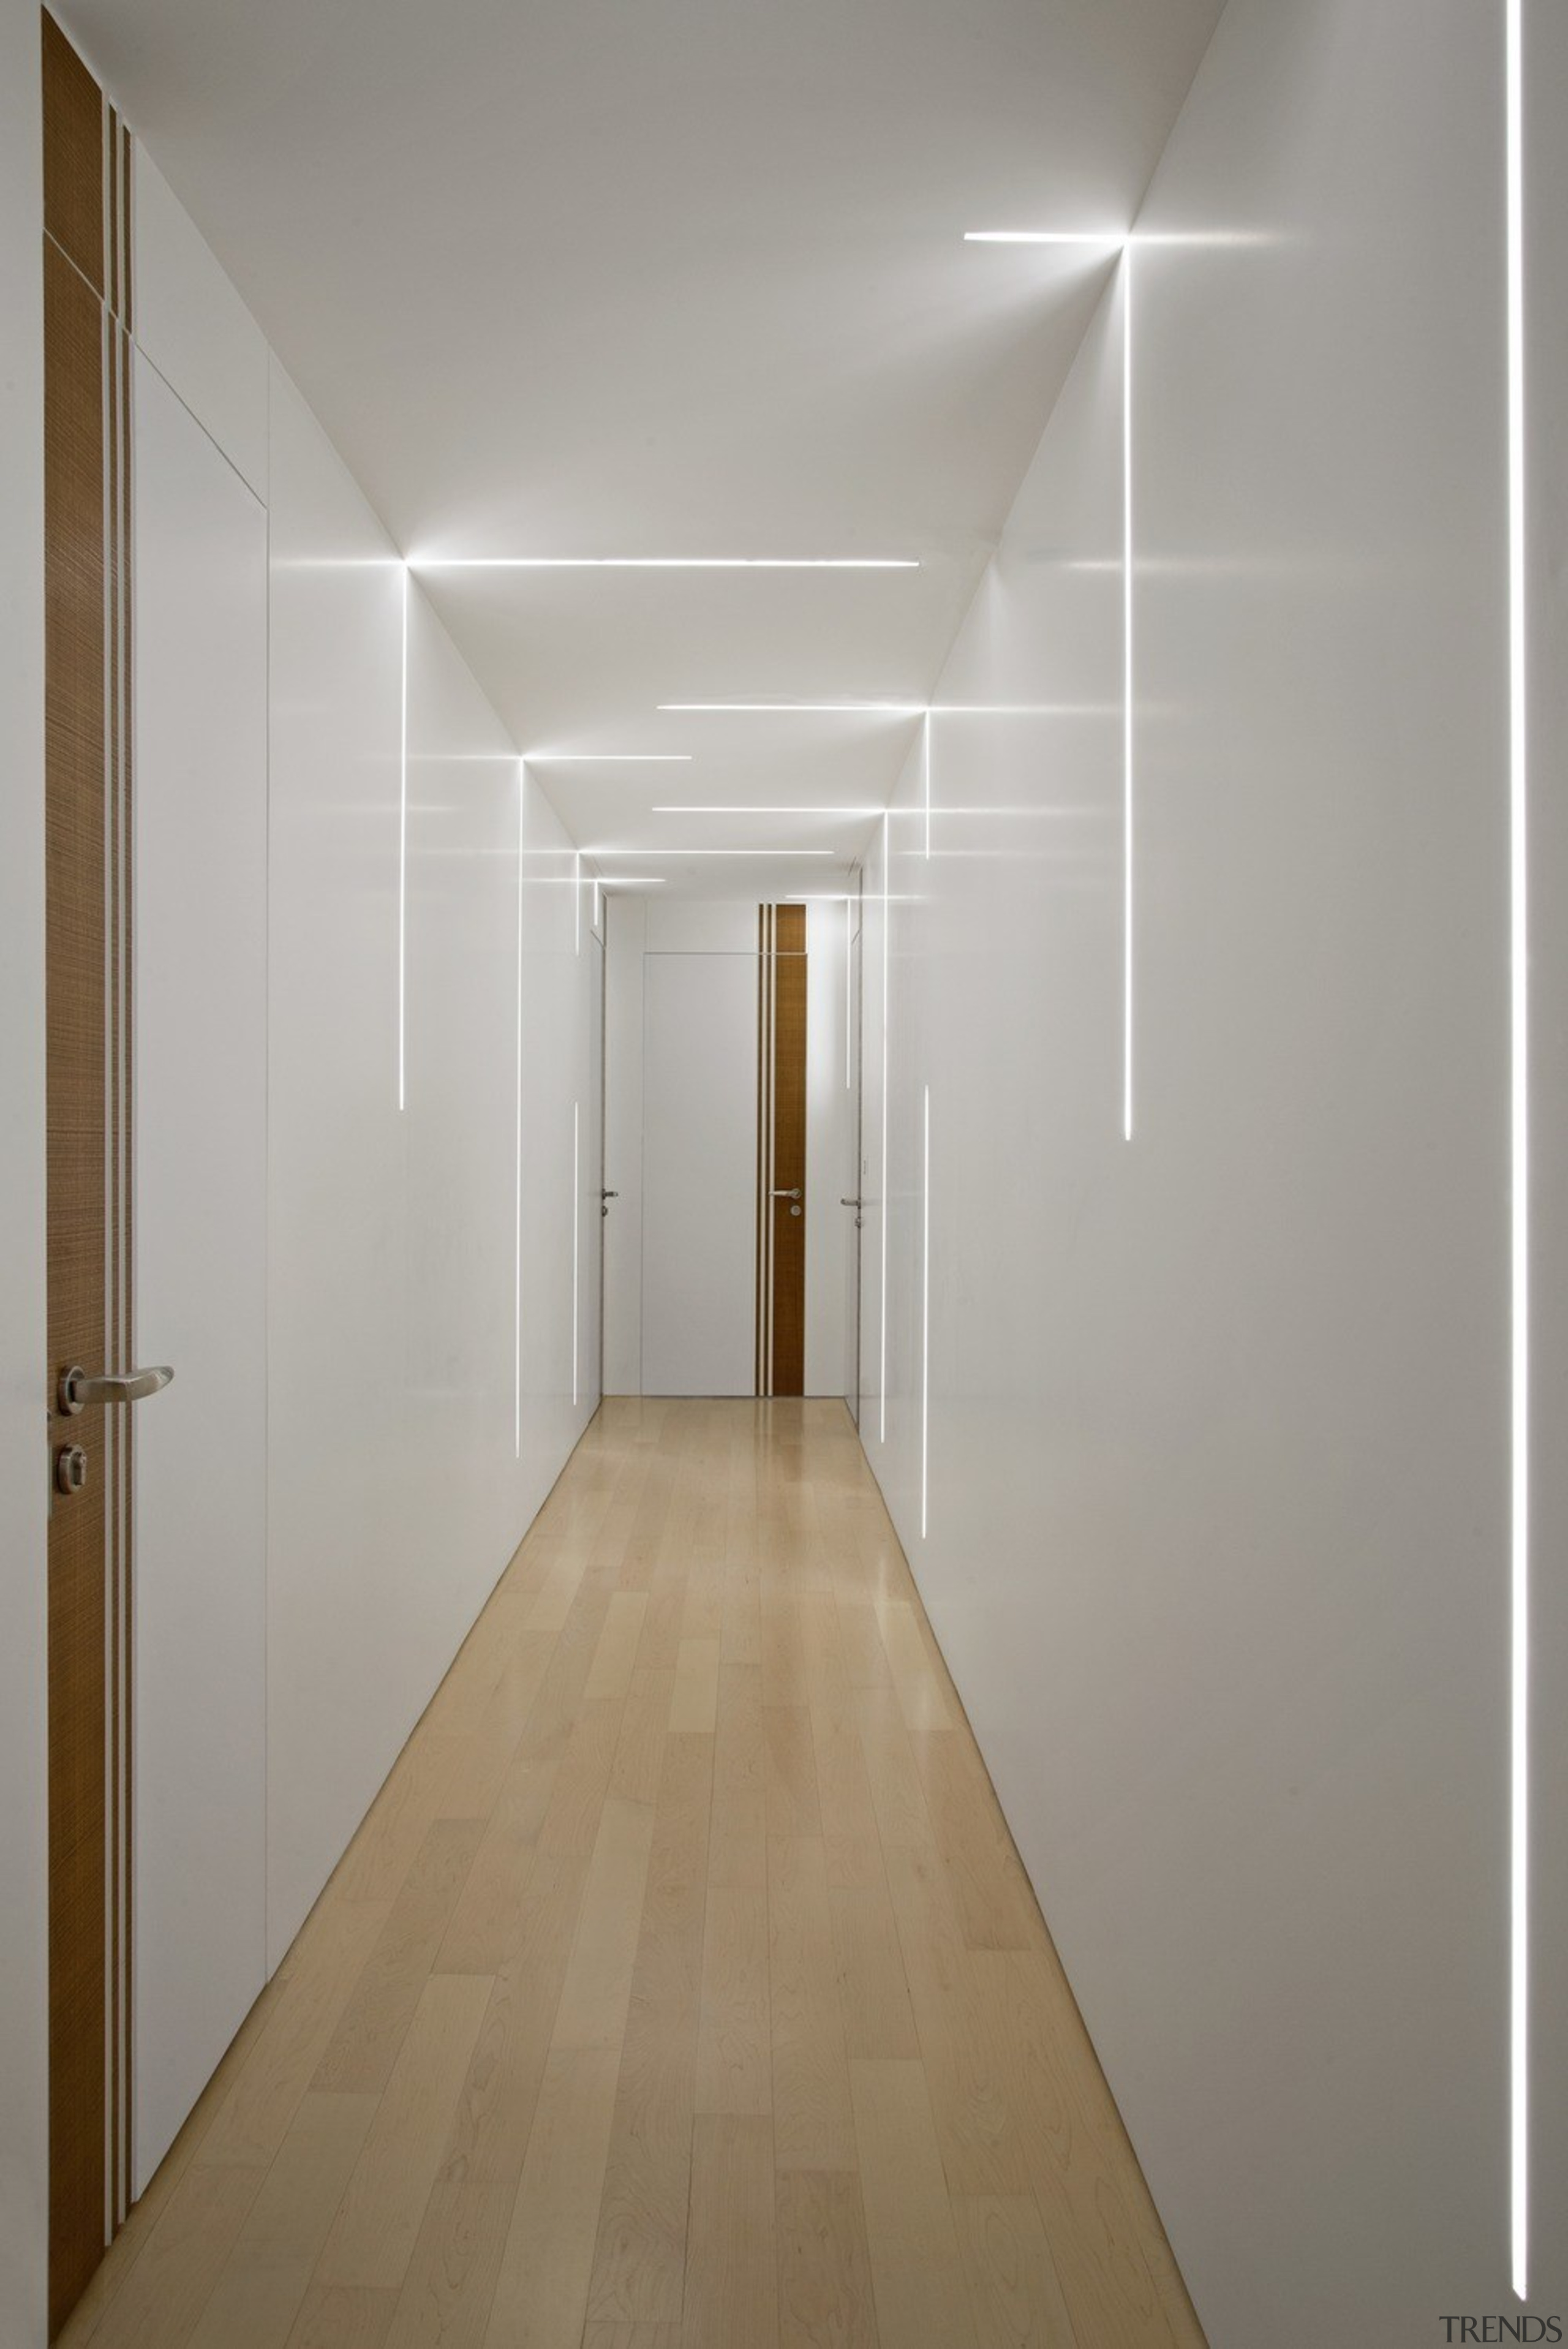 In the hallway, stripes of LED lights from architecture, building, ceiling, door, floor, flooring, glass, hall, house, interior design, line, plaster, property, room, space, wall, gray